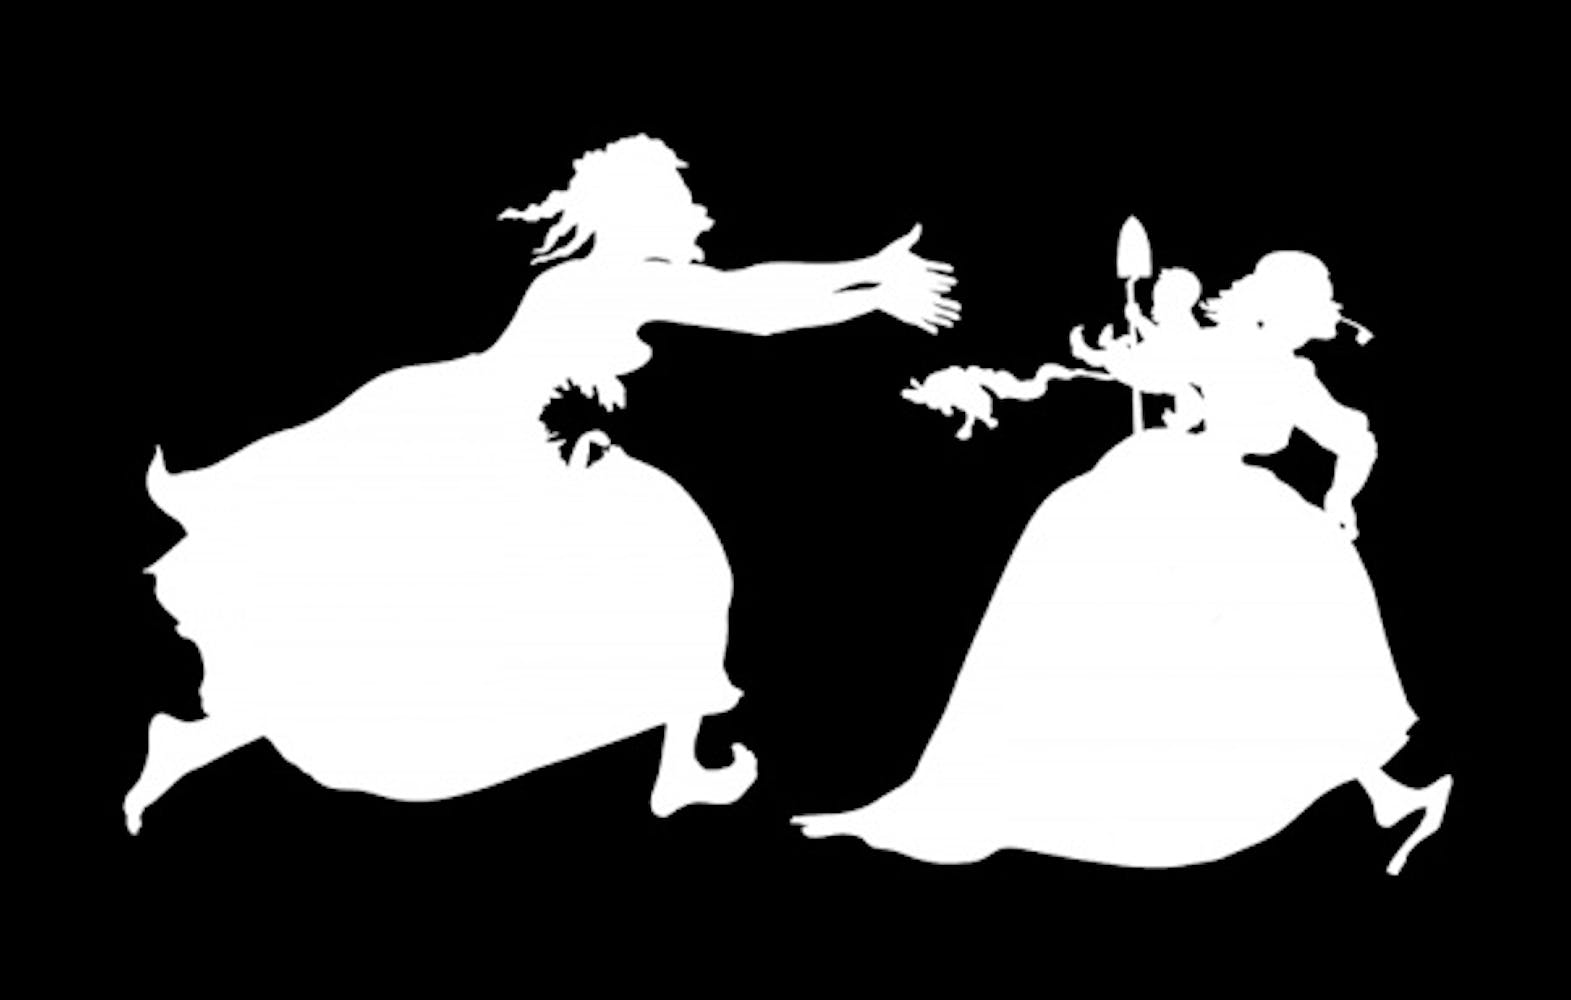 Kara Walker, Excavated from the Black Heart of a Negress, 2002